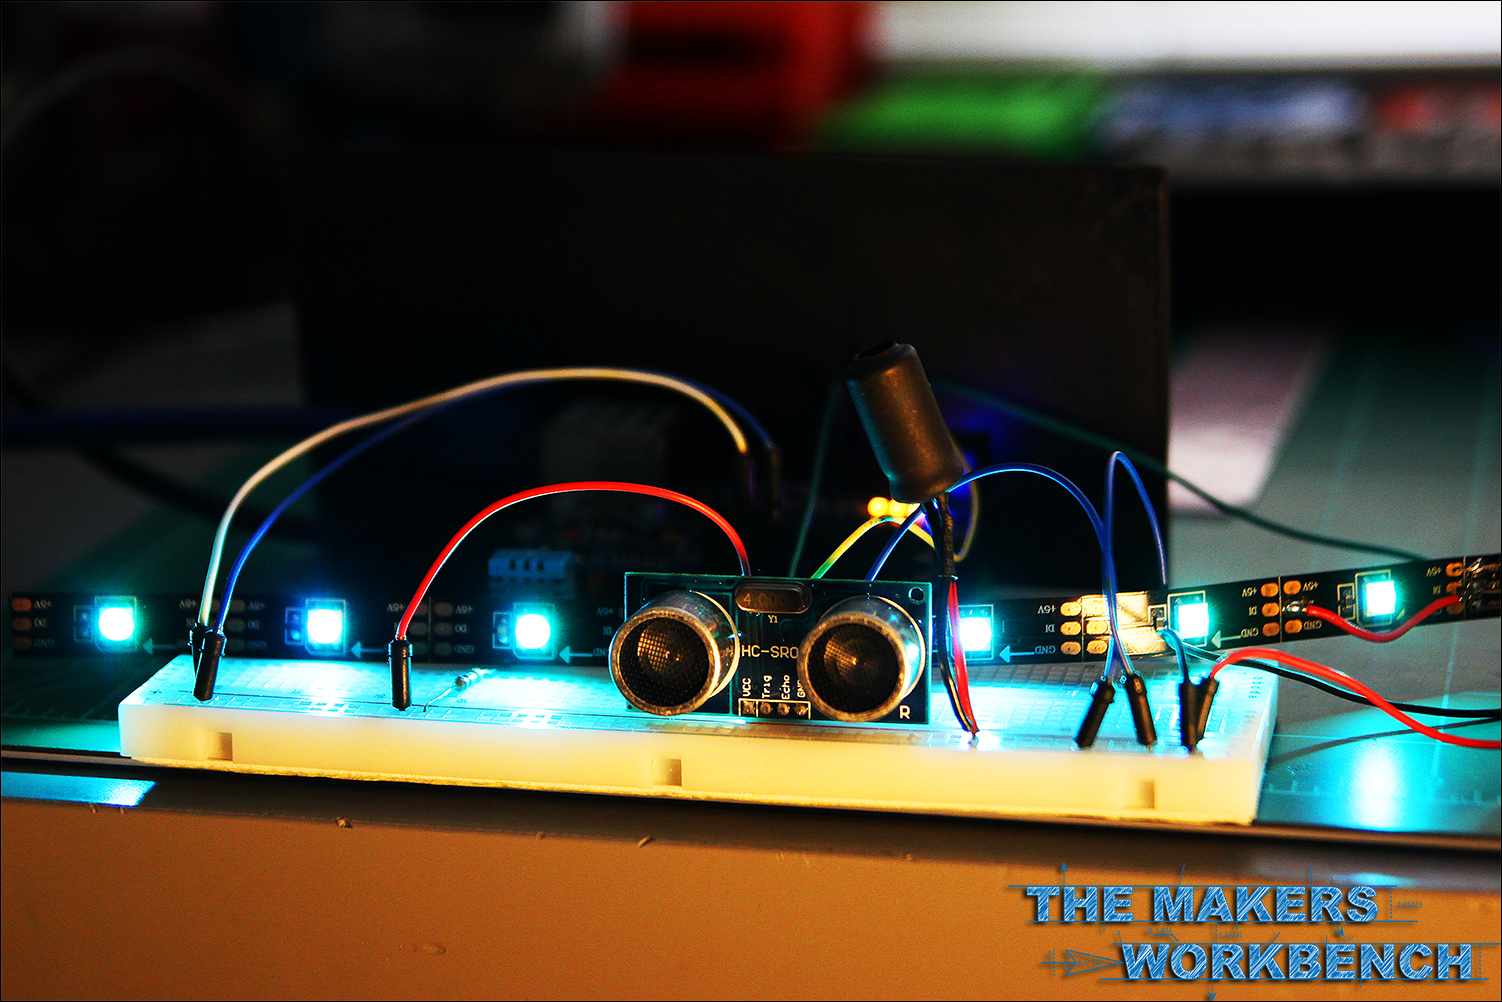 Using an Ultrasonic Distance Sensor to illuminate NeoPixels